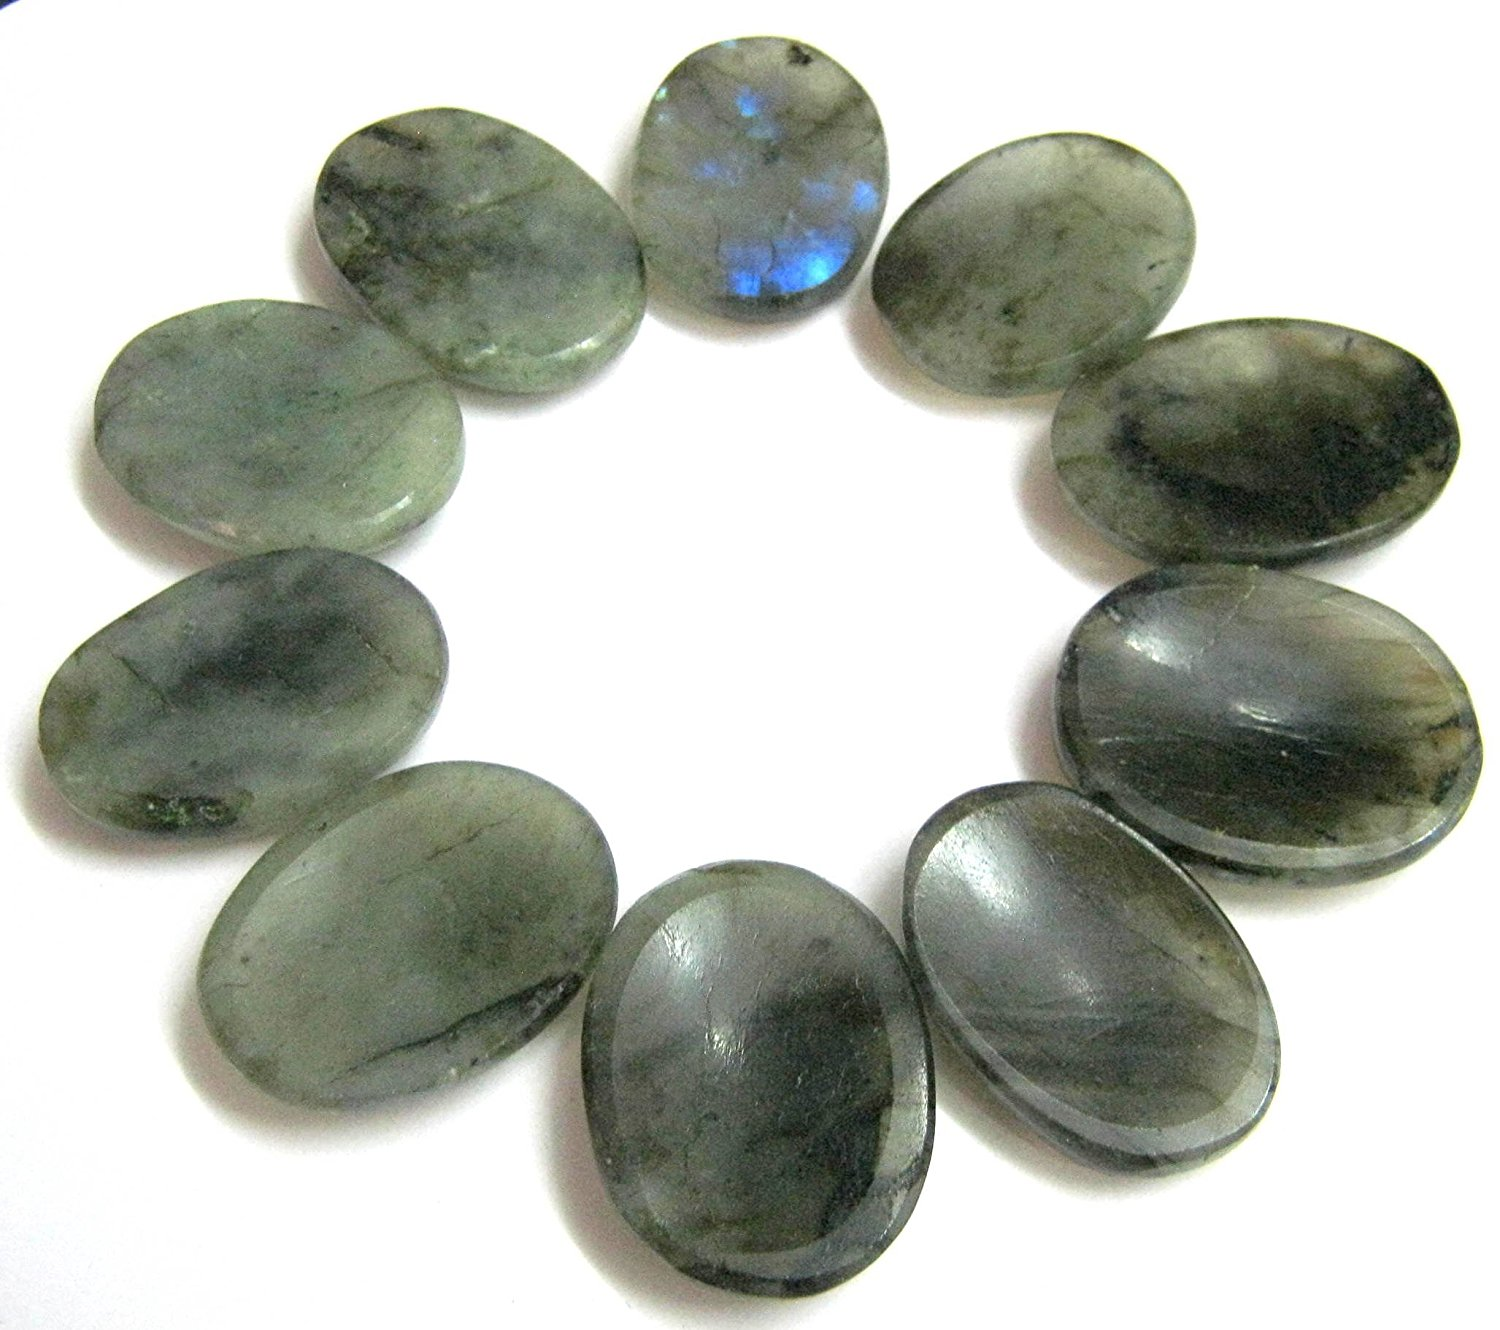 crystalmiracle-beautiful-lot-of-ten-labradorite-thumb-stones-crystal-gemstone-healing-wellness-reiki-feng-shui-gift-metaphysical-worry-stones-fear-health